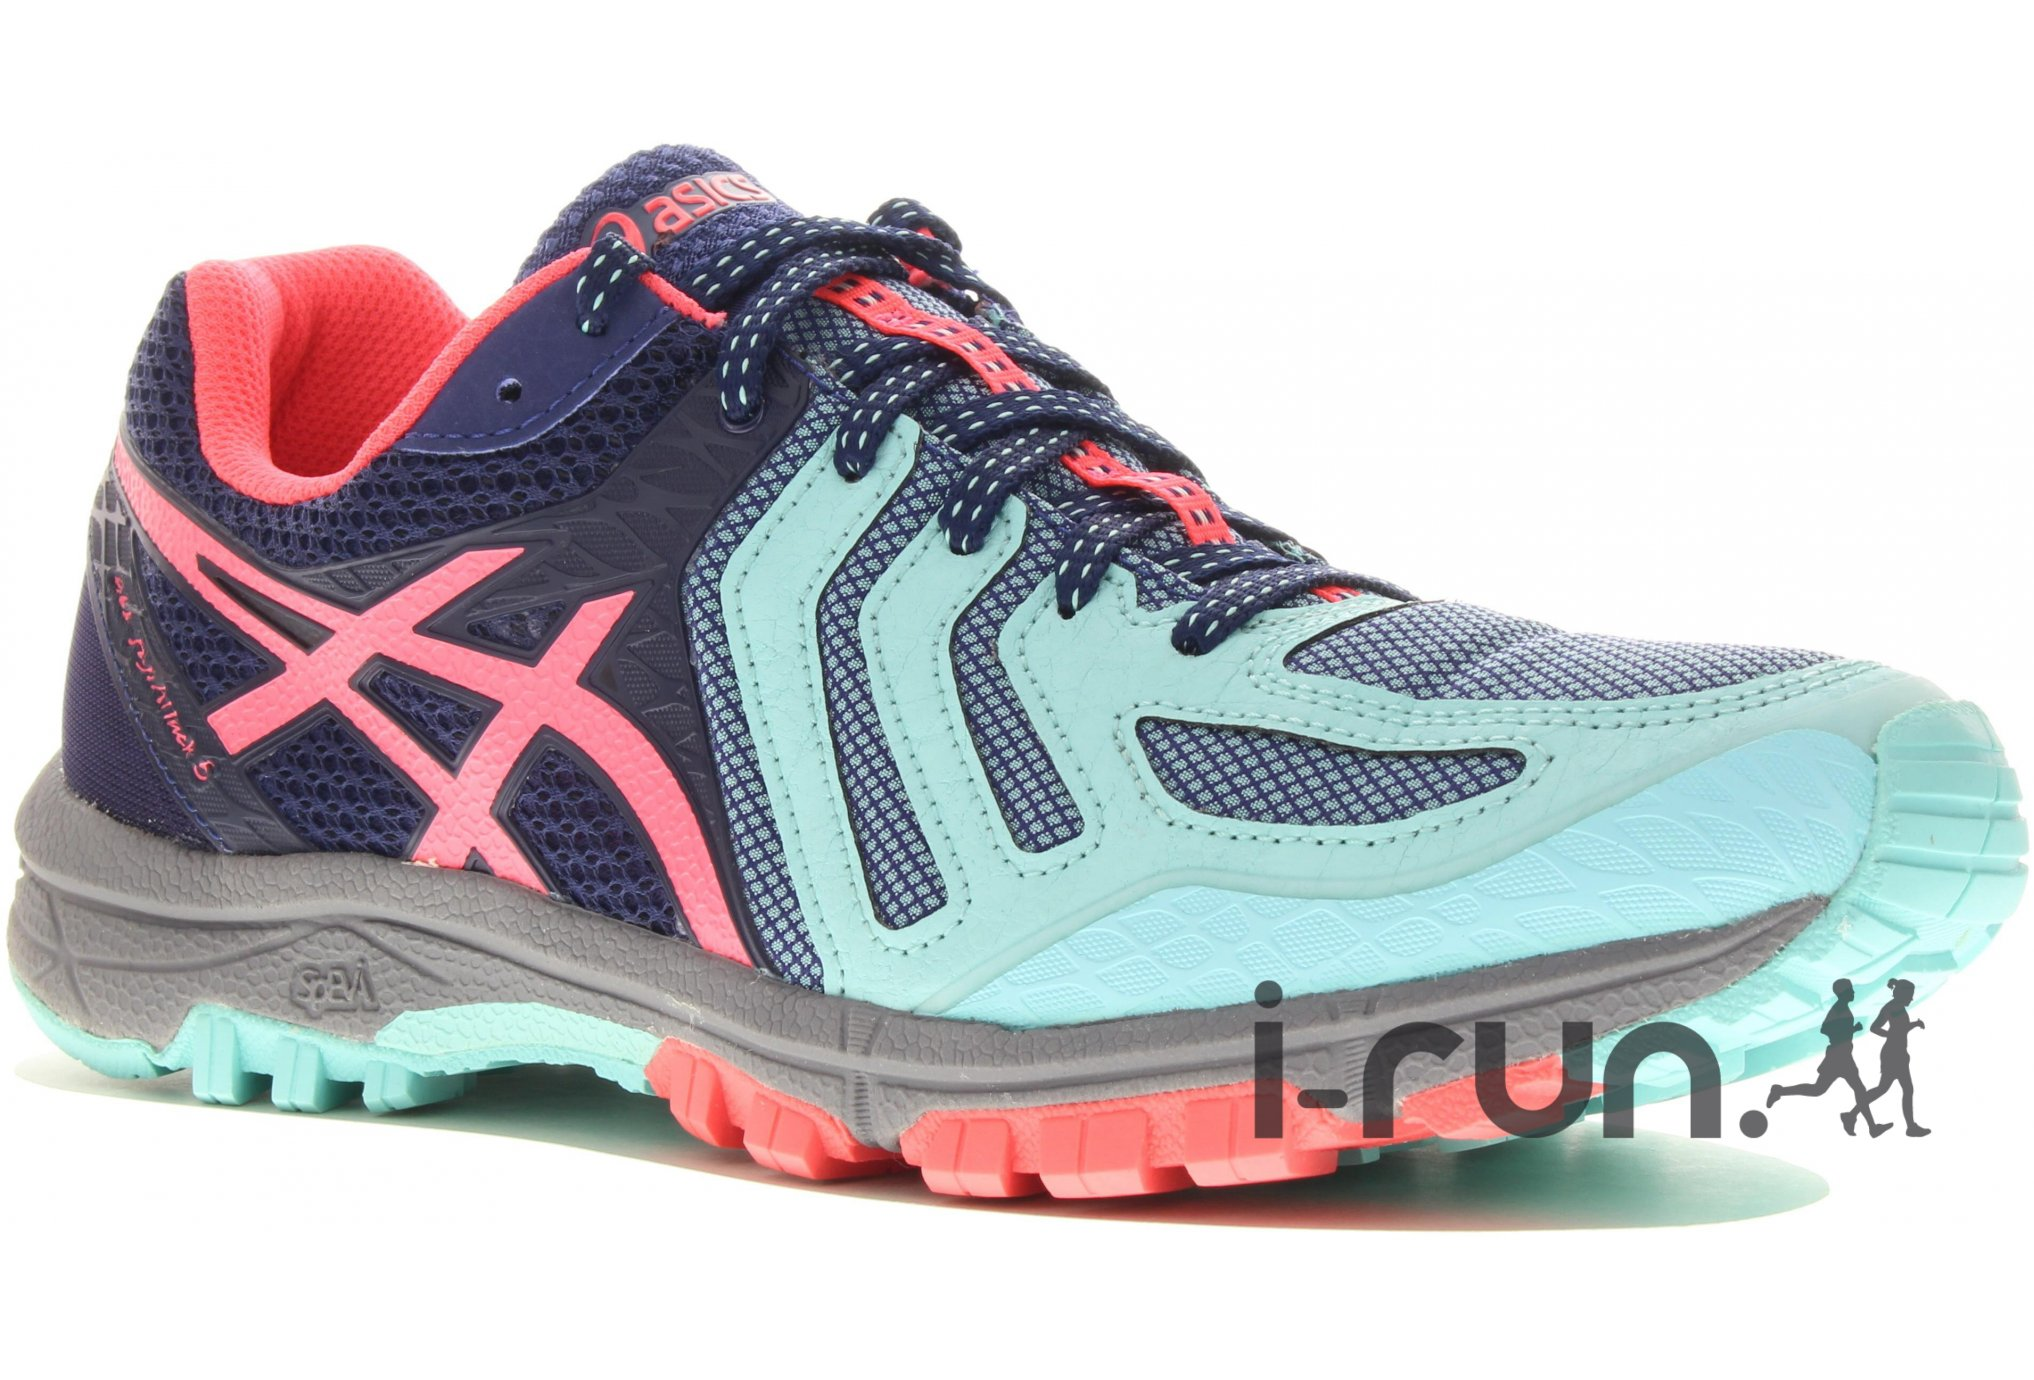 Sonoma Chaussures Asics 3 Trail Femme Gore W Running Gel Session Tex 4qj35RLA